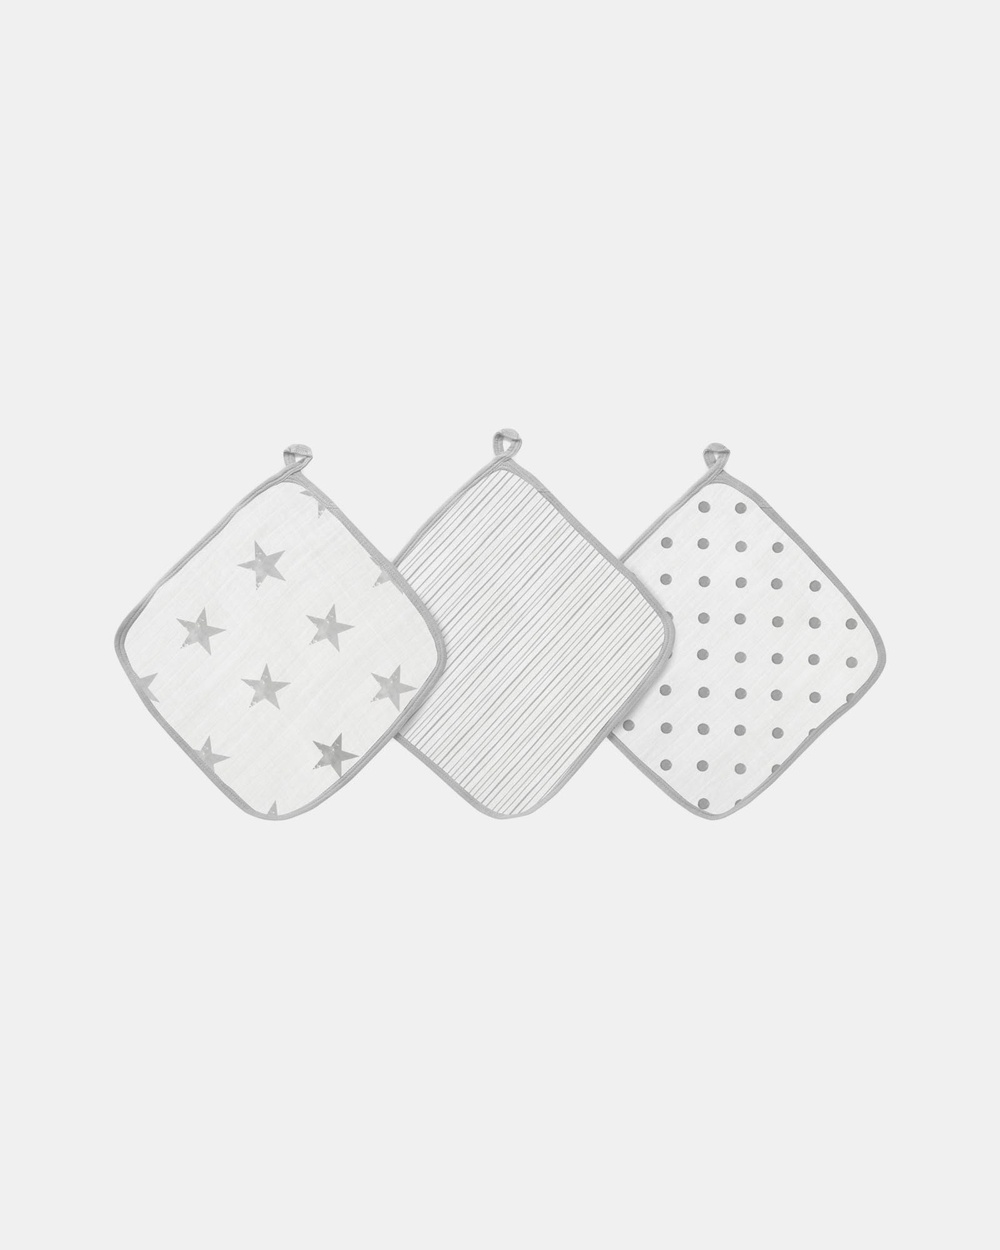 Aden & Anais 3 Pack Essentials Muslin Washcloths Towels Face Washers Dusty Stars 3-Pack